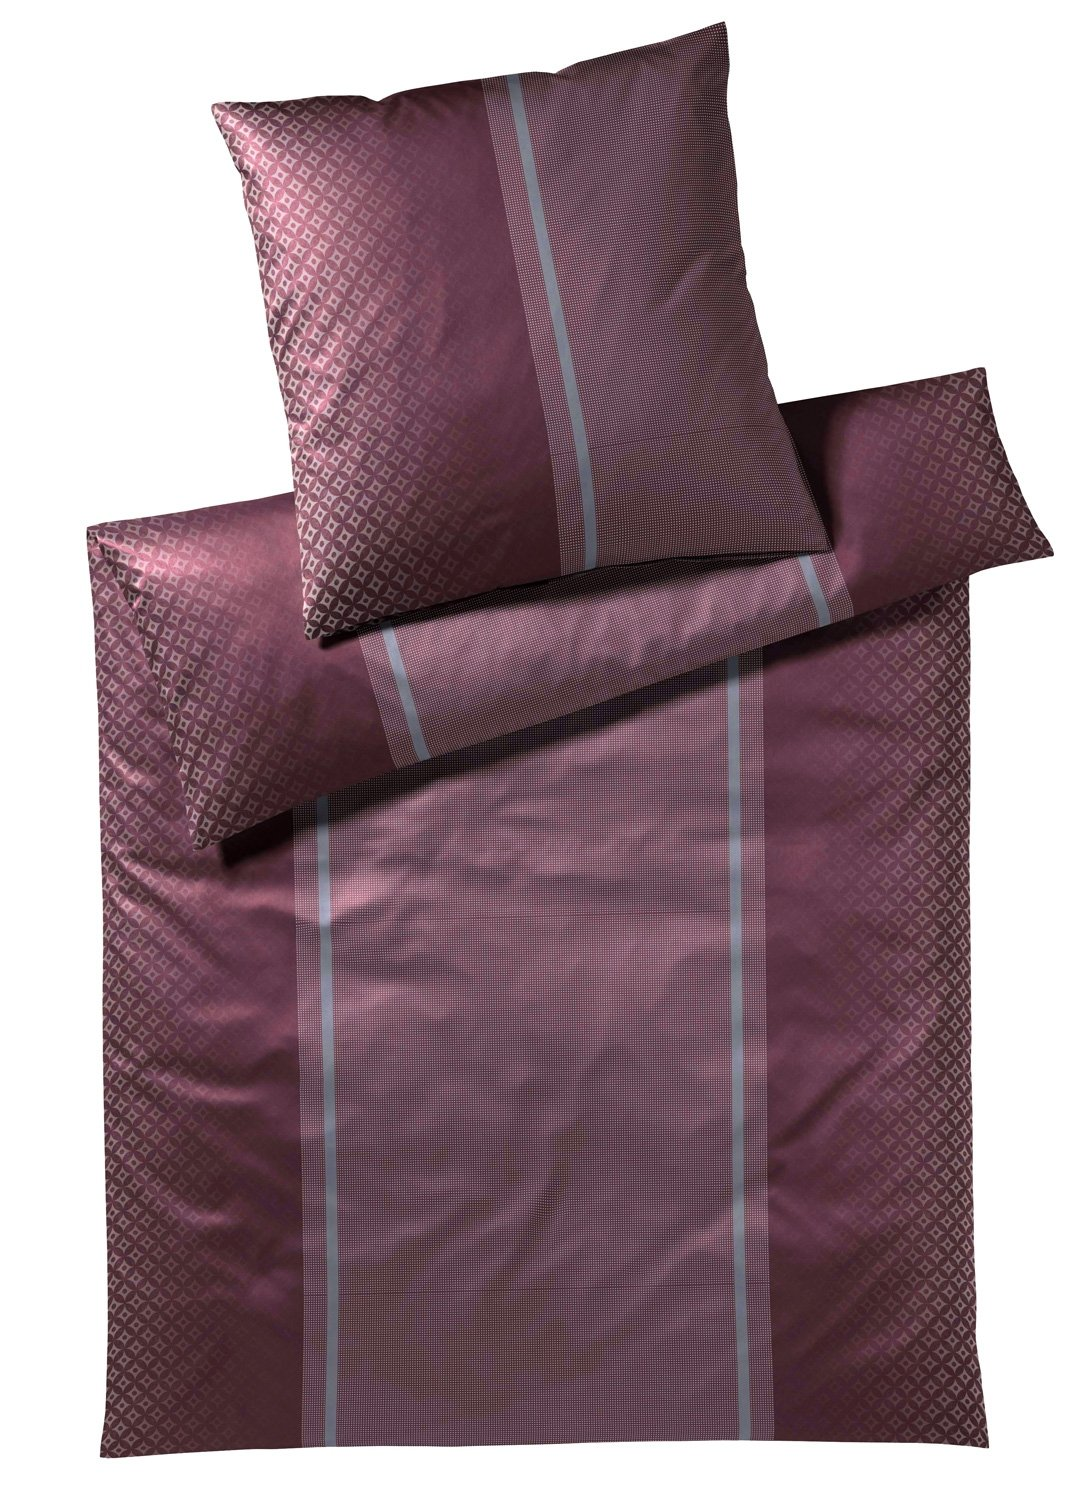 Elegante Joop  Bettwäsche Decor 4071   1 Burgundy - 155 x 220 cm